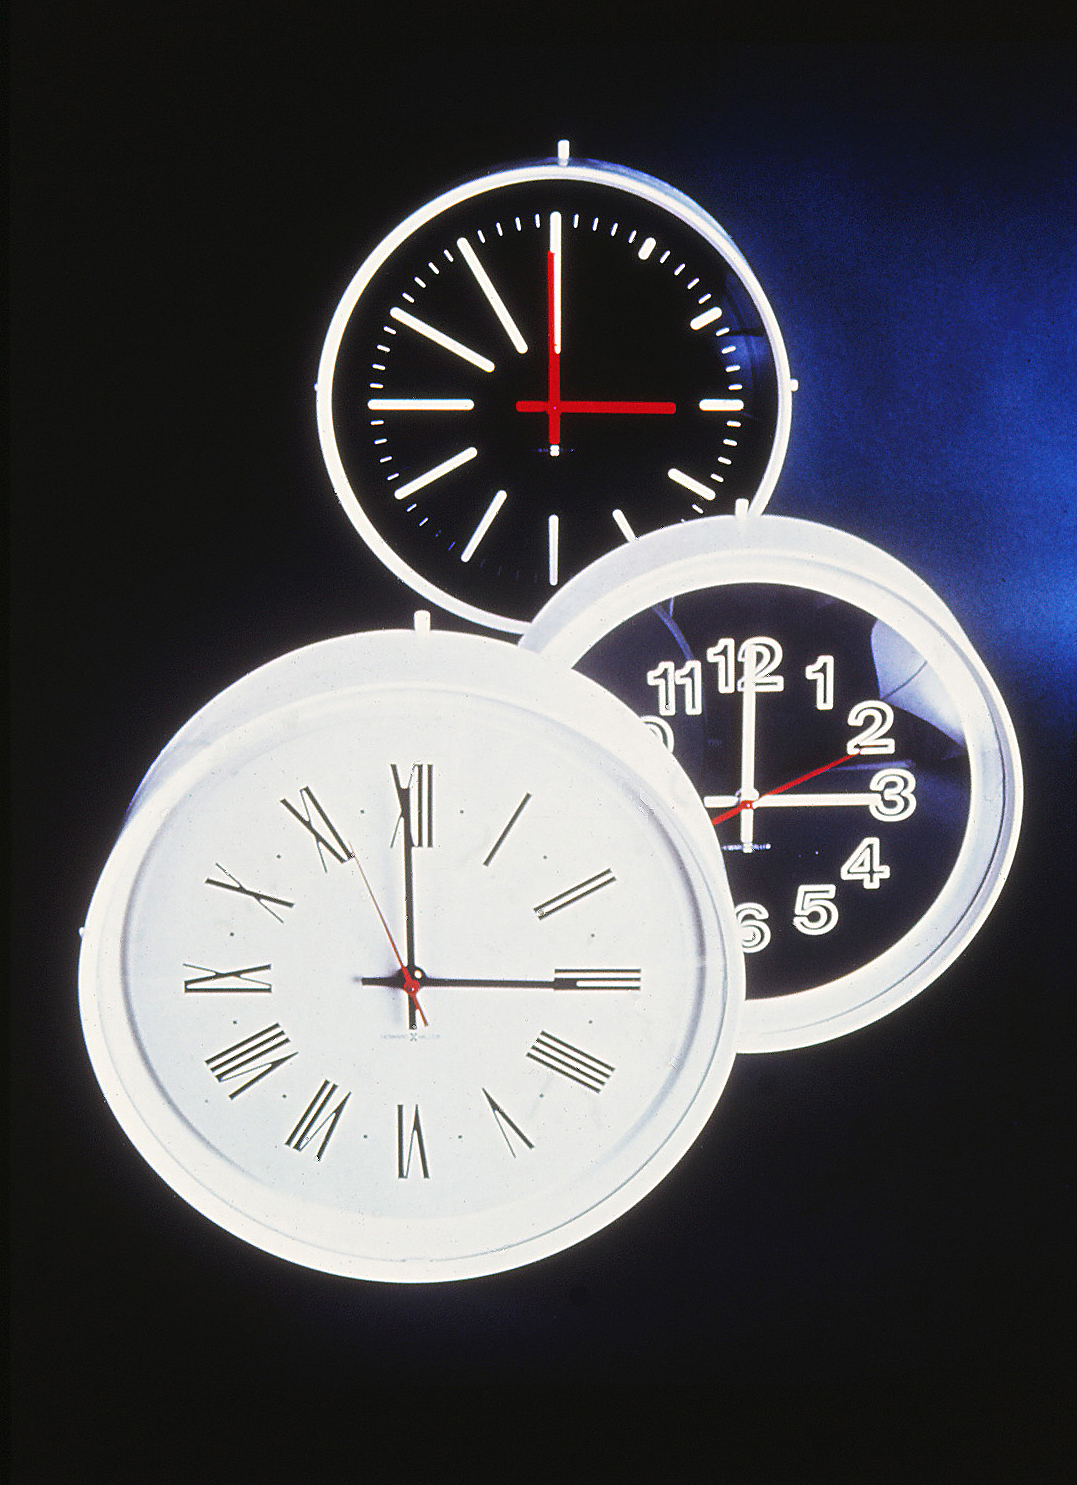 Three Institutional Clocks against a background.